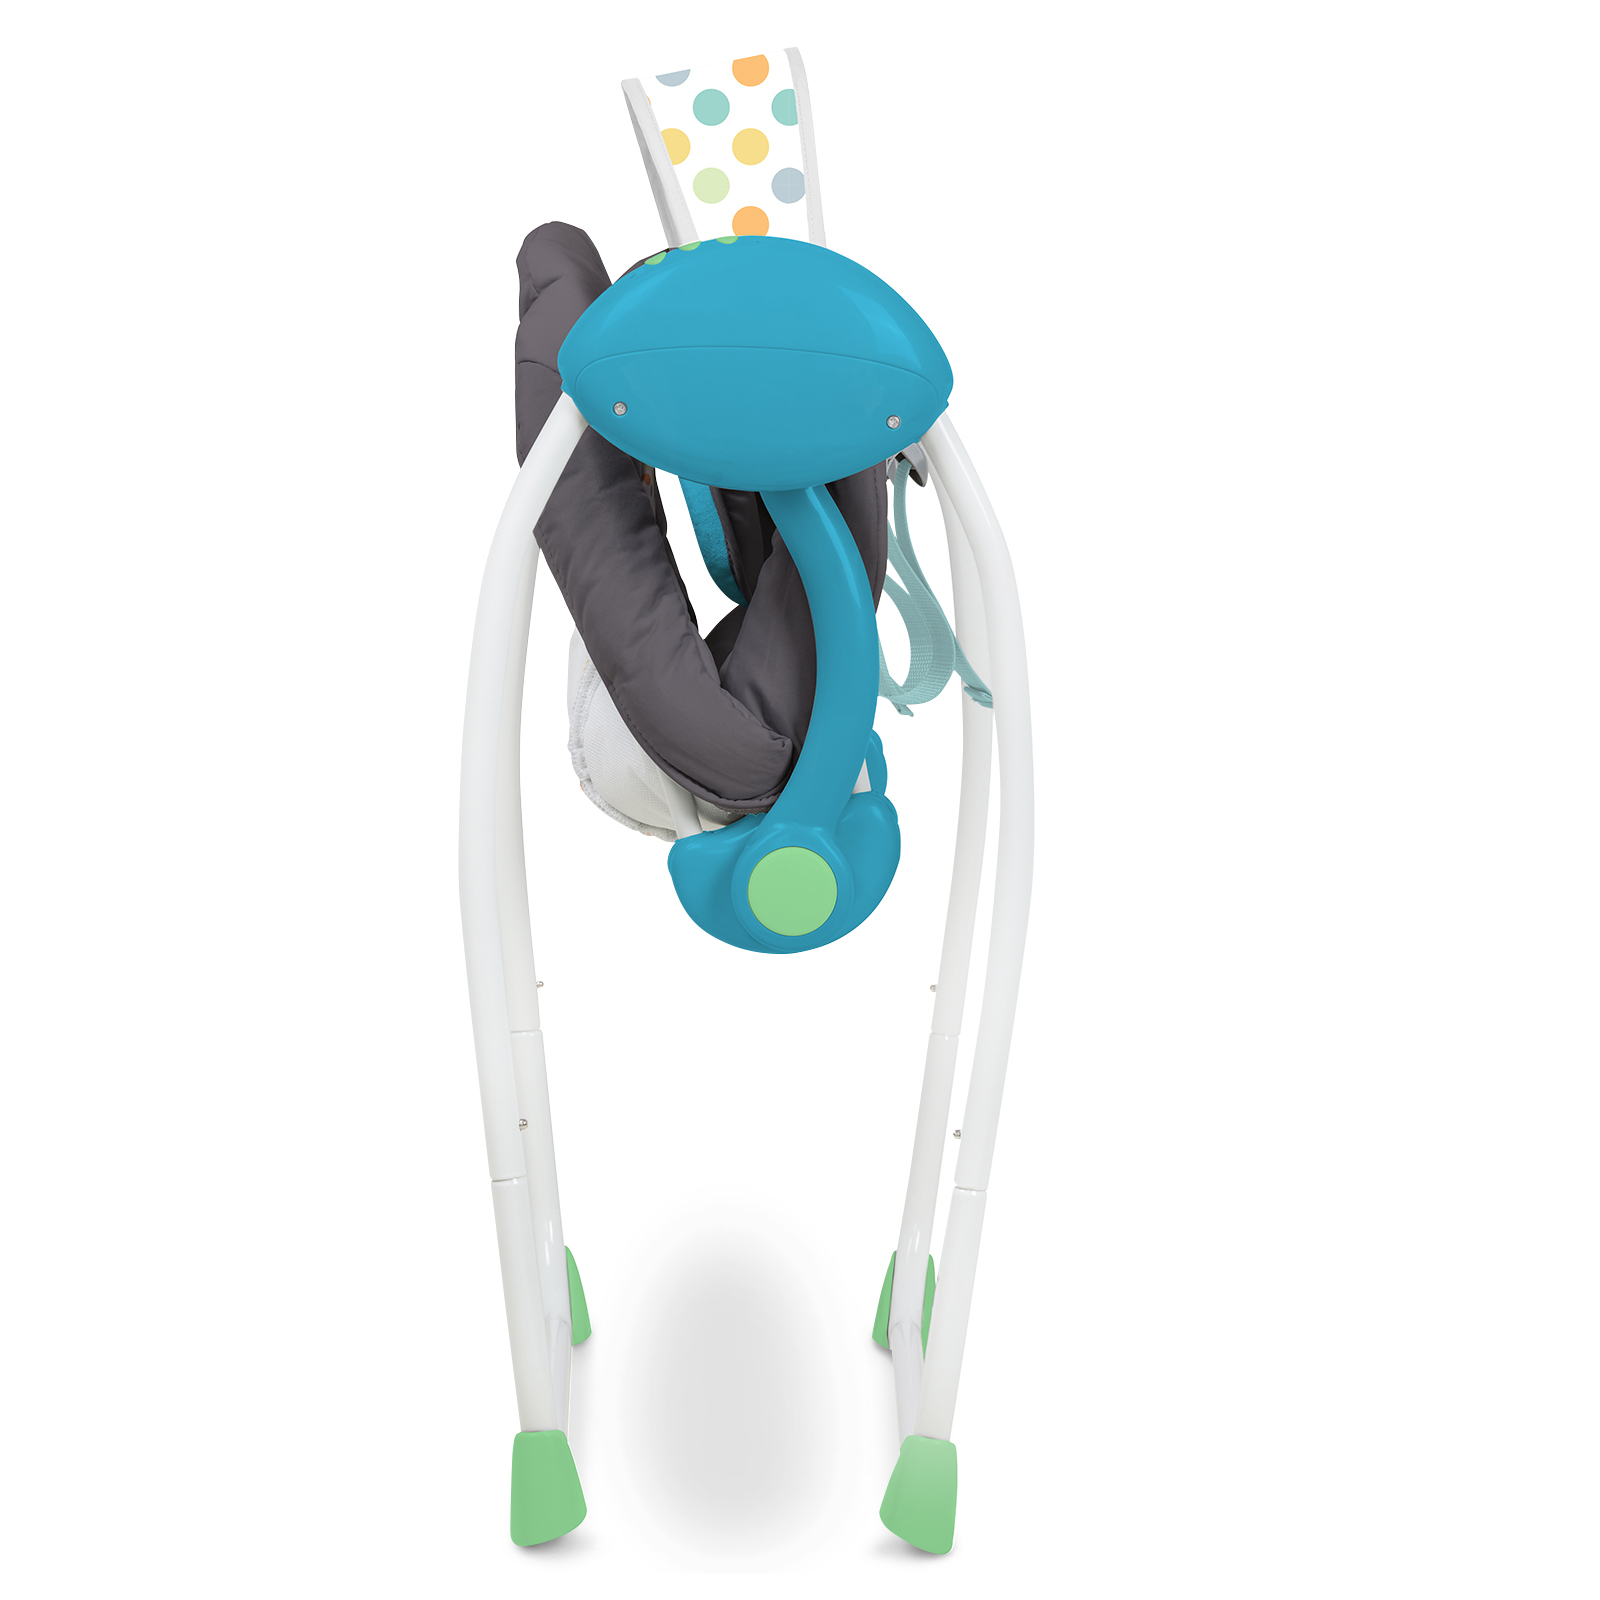 Baby-Bouncer-Music-MP3-Swing-Rocking-Chair-Infant-Entertainment-Toys-U12-Months thumbnail 11